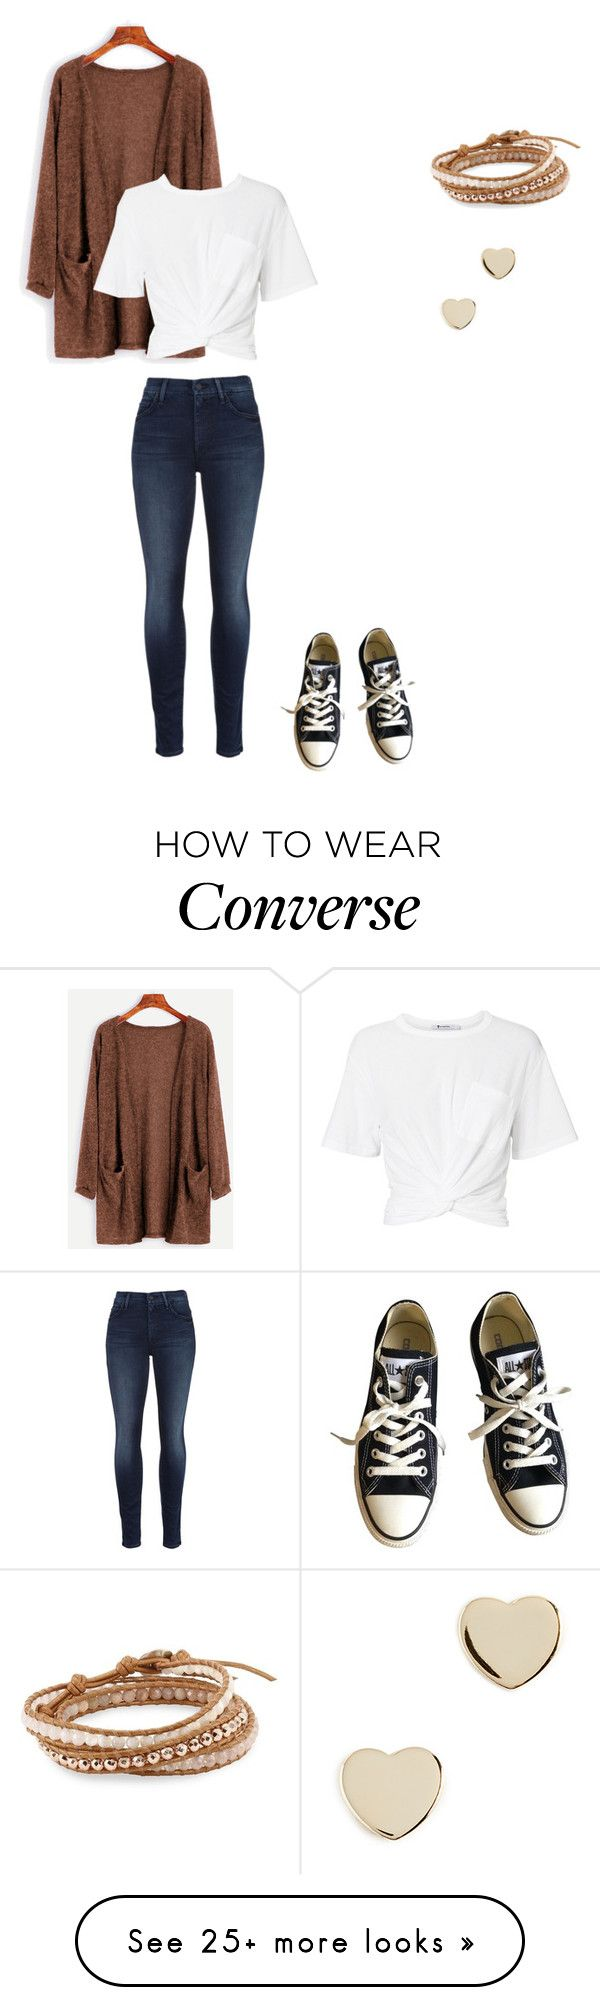 """""""Untitled #412"""" by tangeled10 on Polyvore featuring T By Alexander Wang, Mother, Converse, Chan Luu and Shashi"""